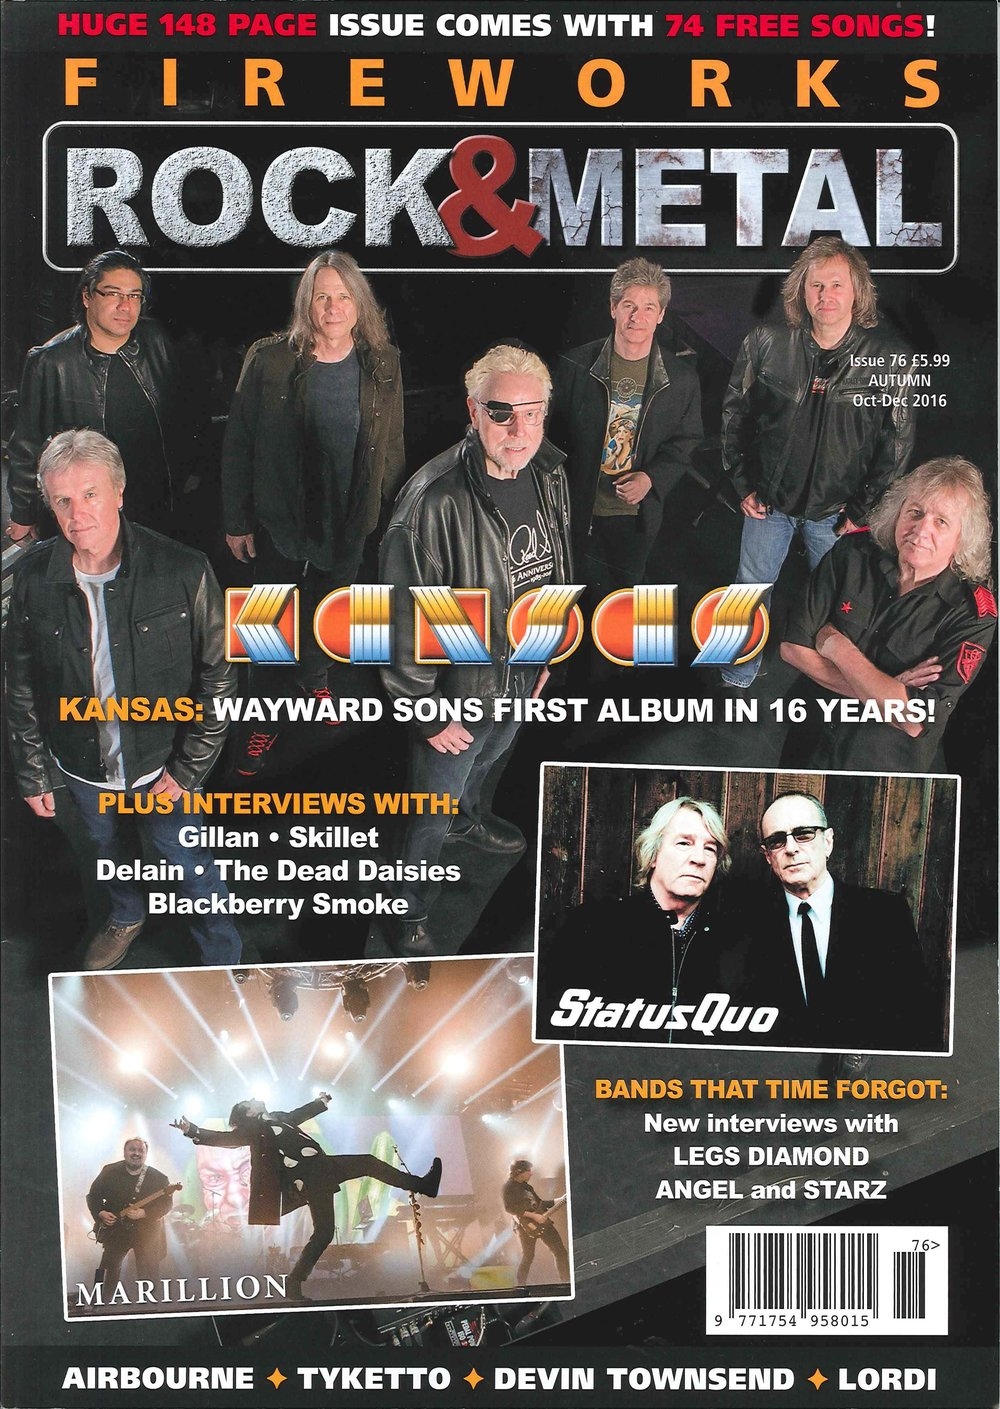 Fireworks Magazine_Oct Dec 2016_Sari Schorr_Album Review_1.jpg